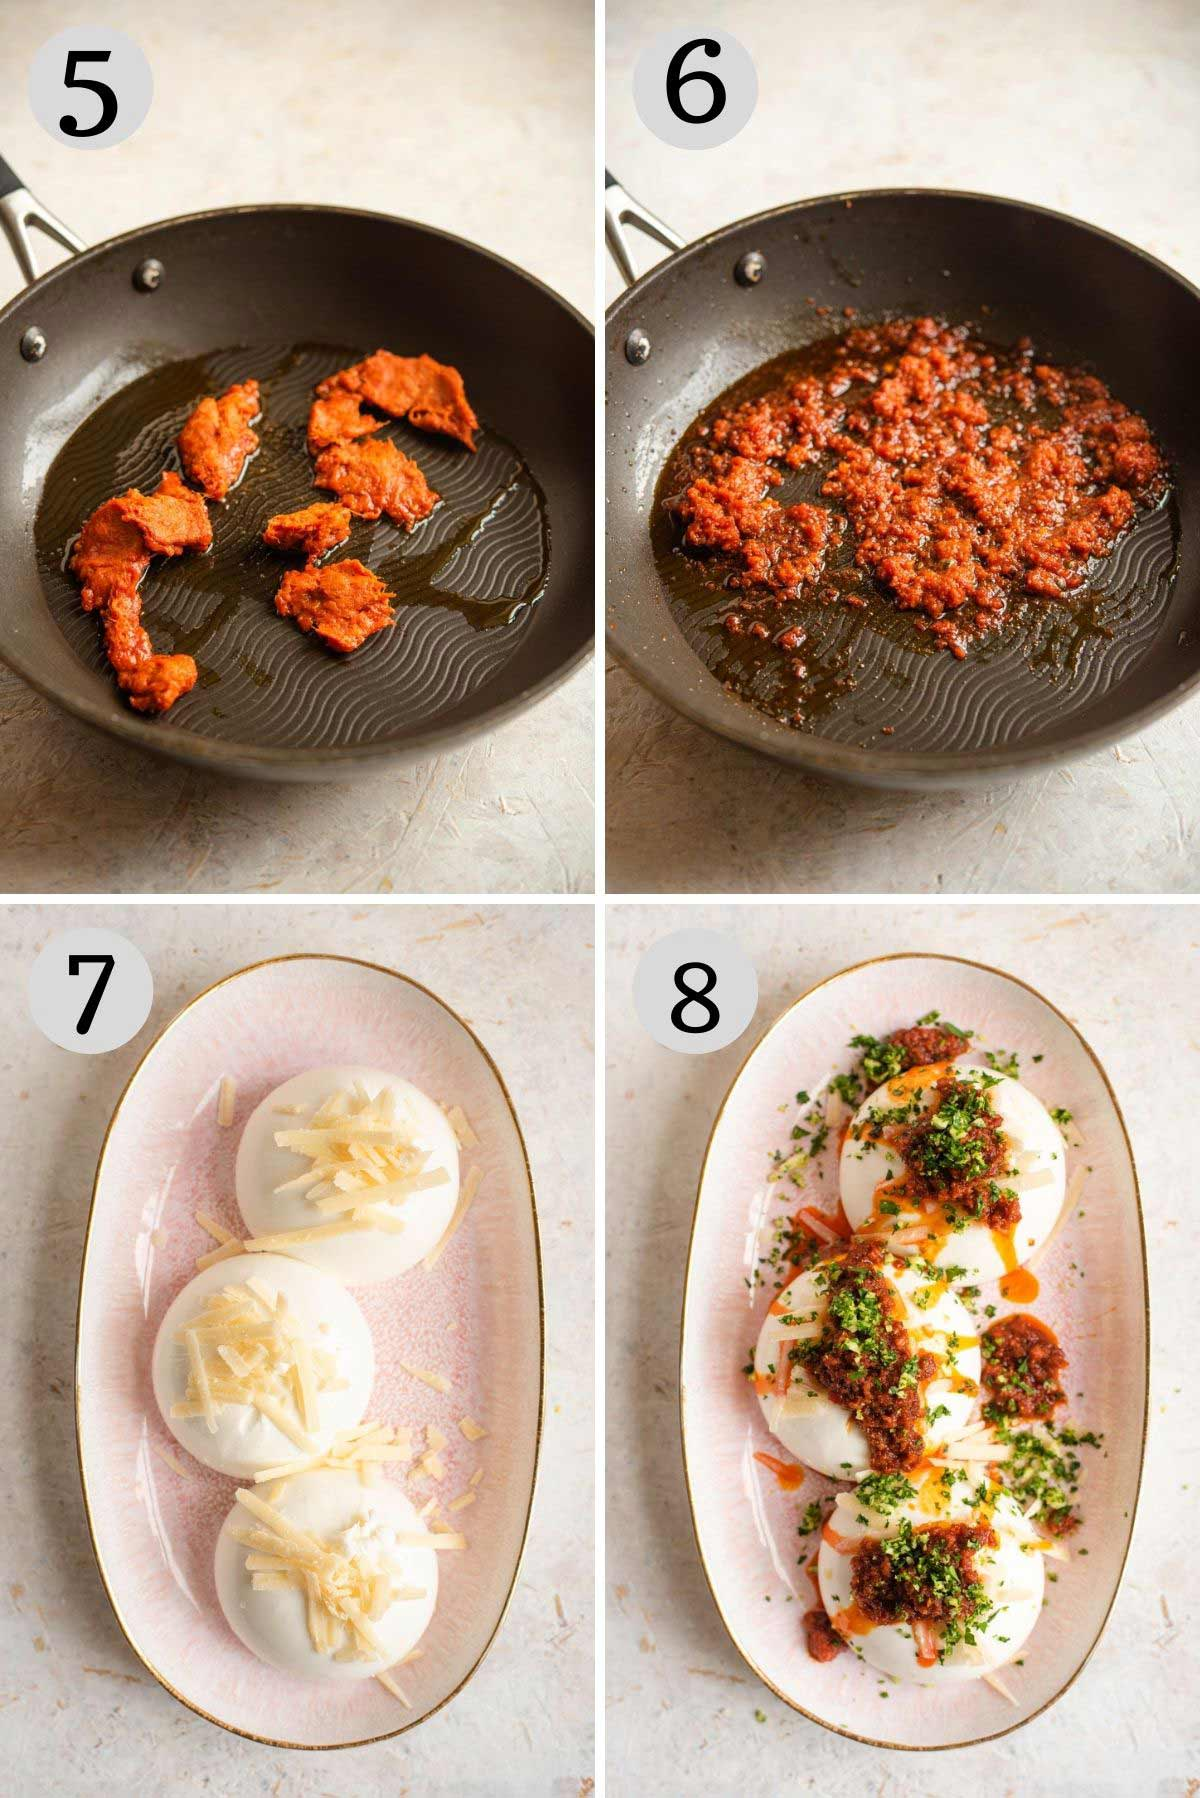 Step by step photos showing how to assemble a burrata appetizer